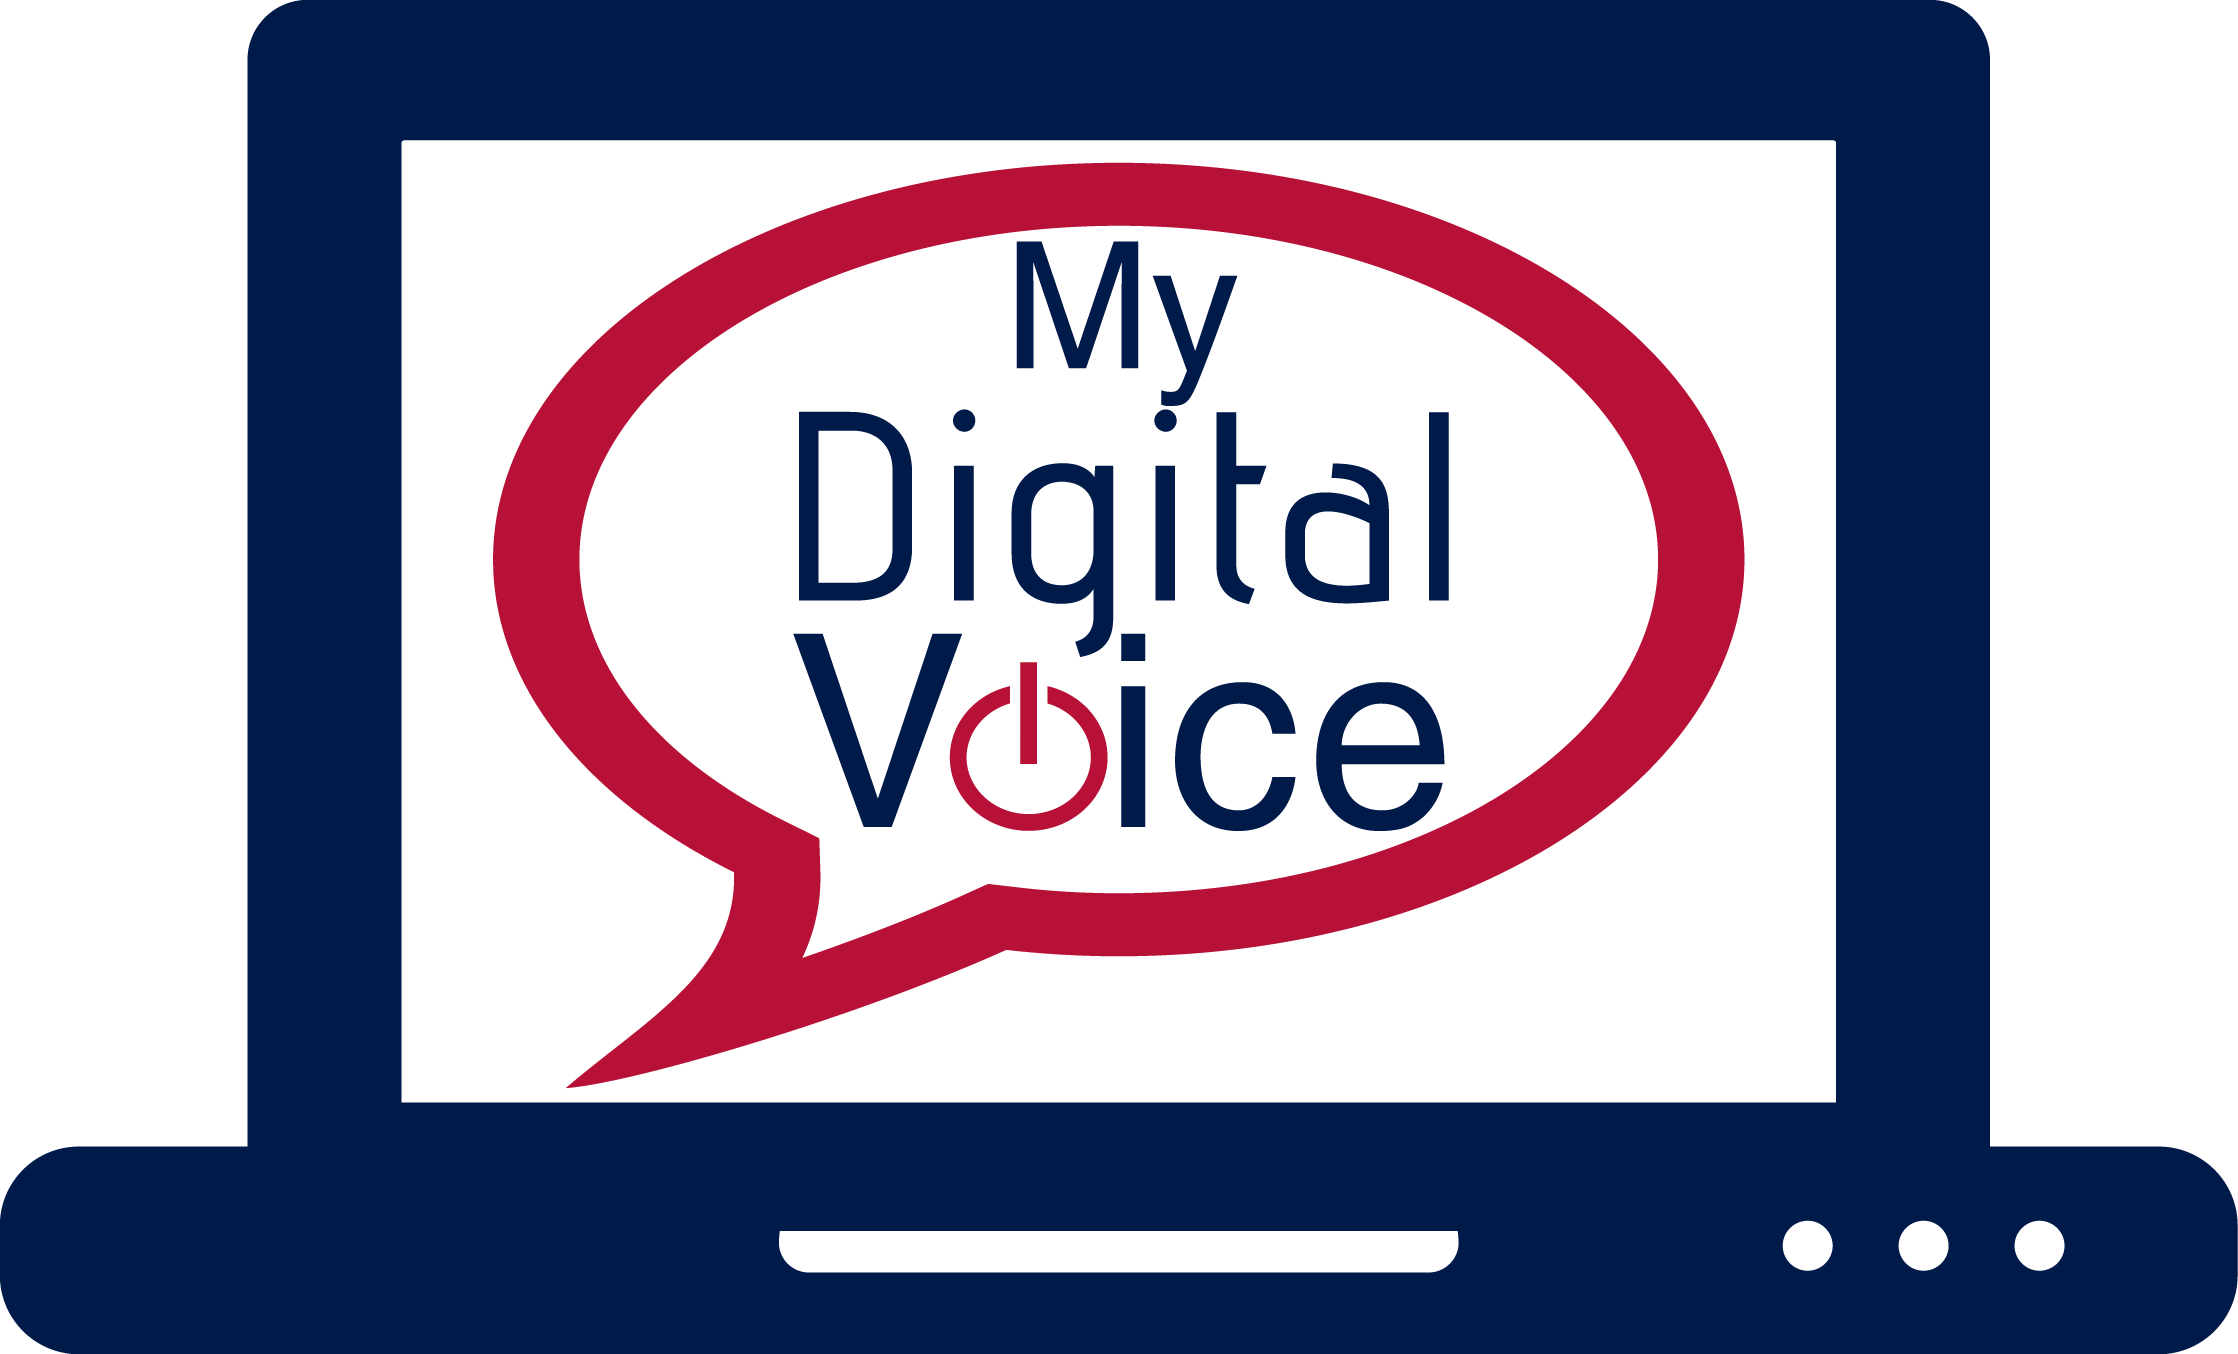 My Digital Voice logo